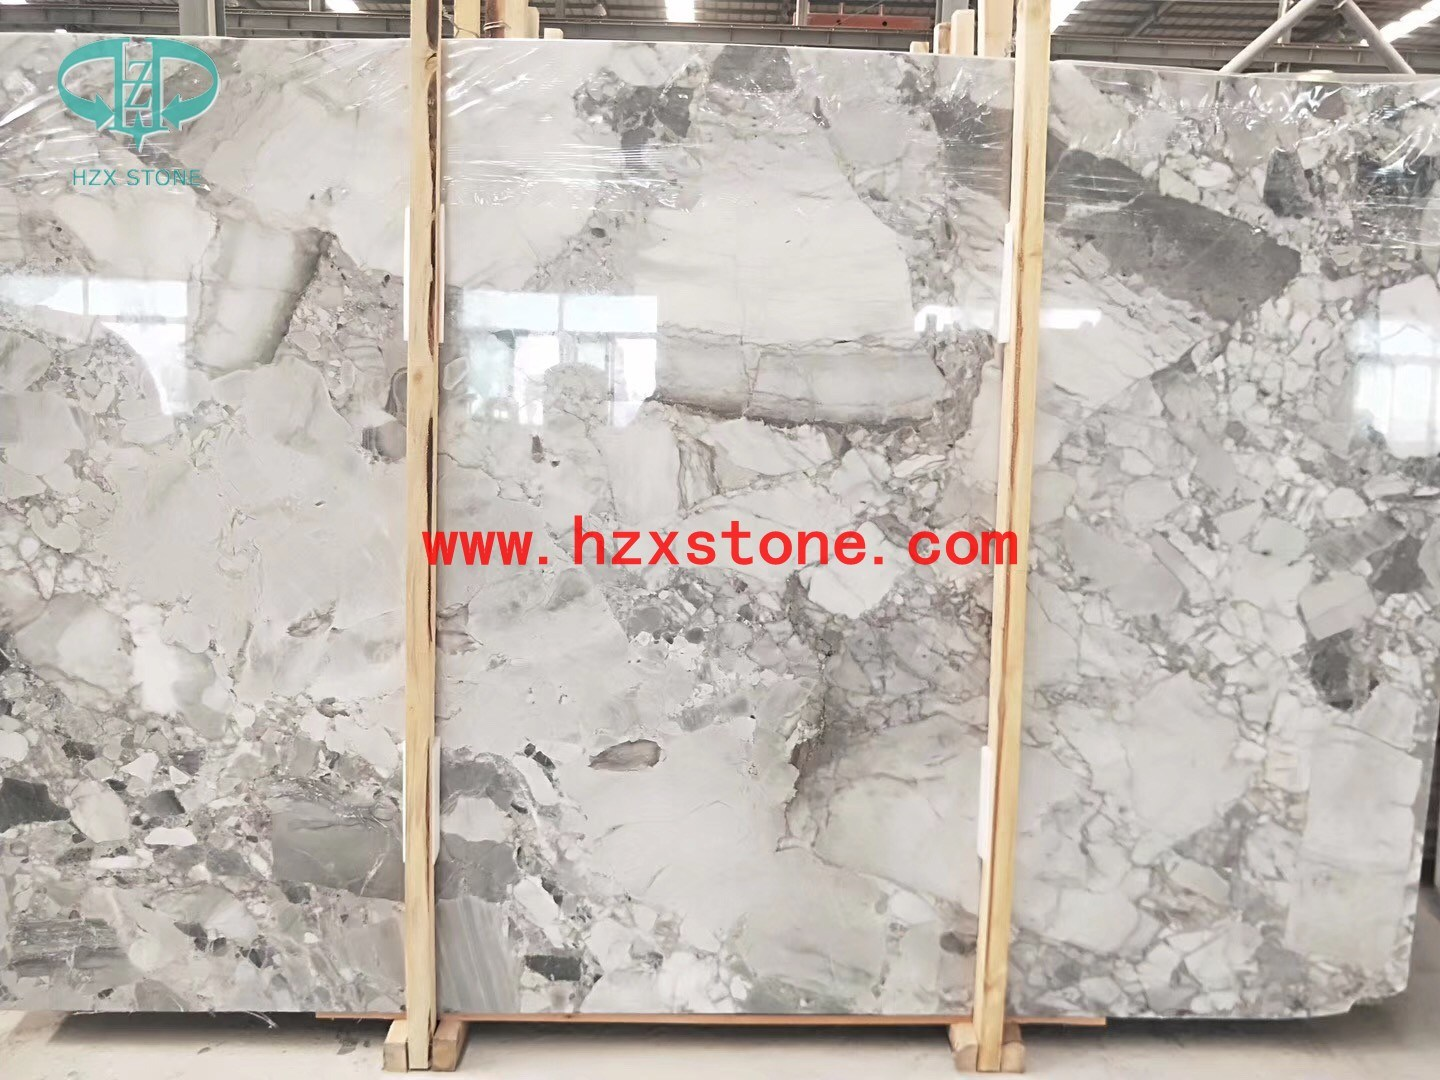 New Calacatta Grey/New Arabescato Grey Marble Slabs/Tiles pictures & photos